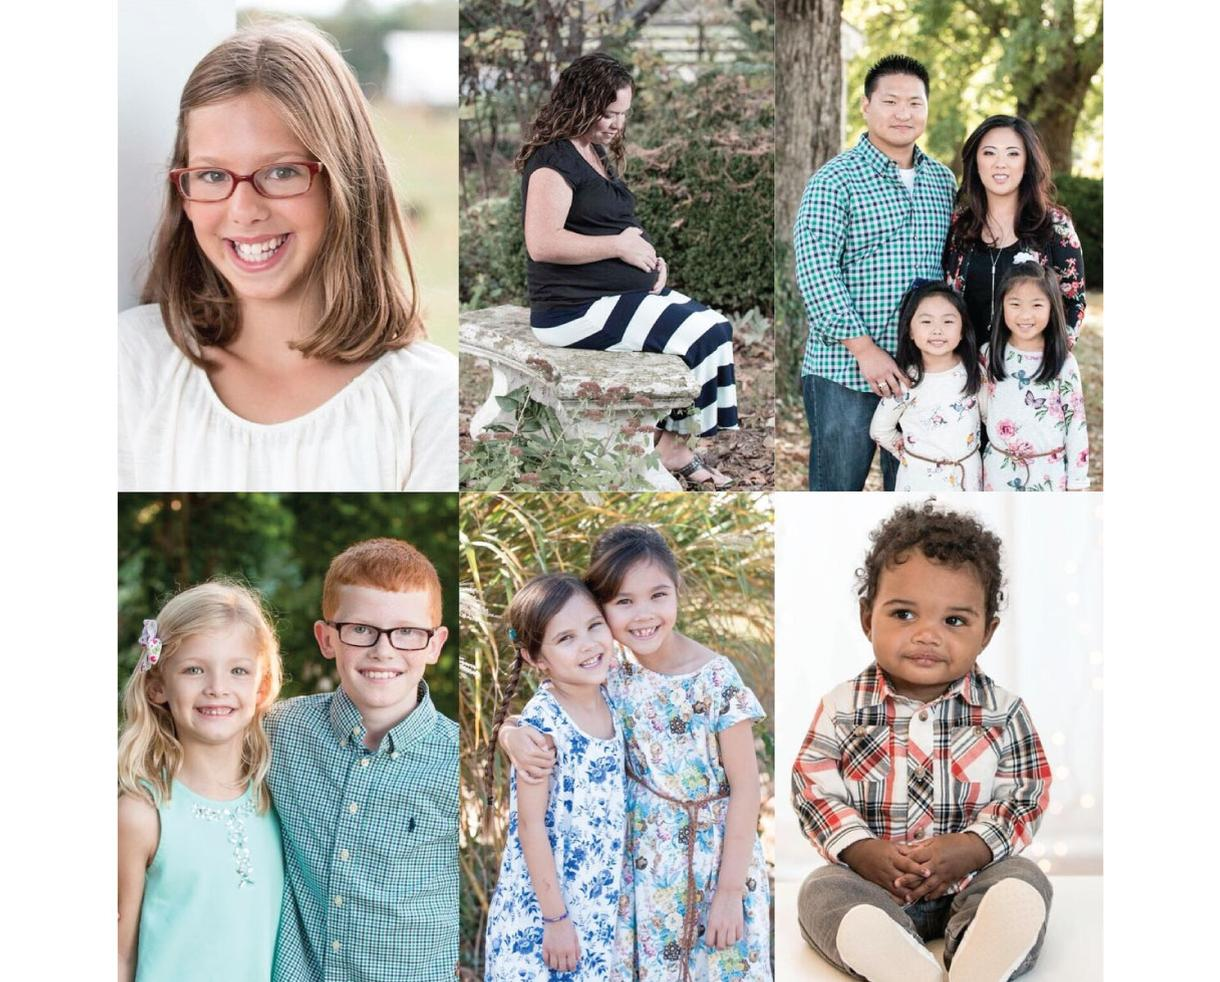 Family Mini Photo Session + 5 Digital Images from Tiffany Kristine Photography